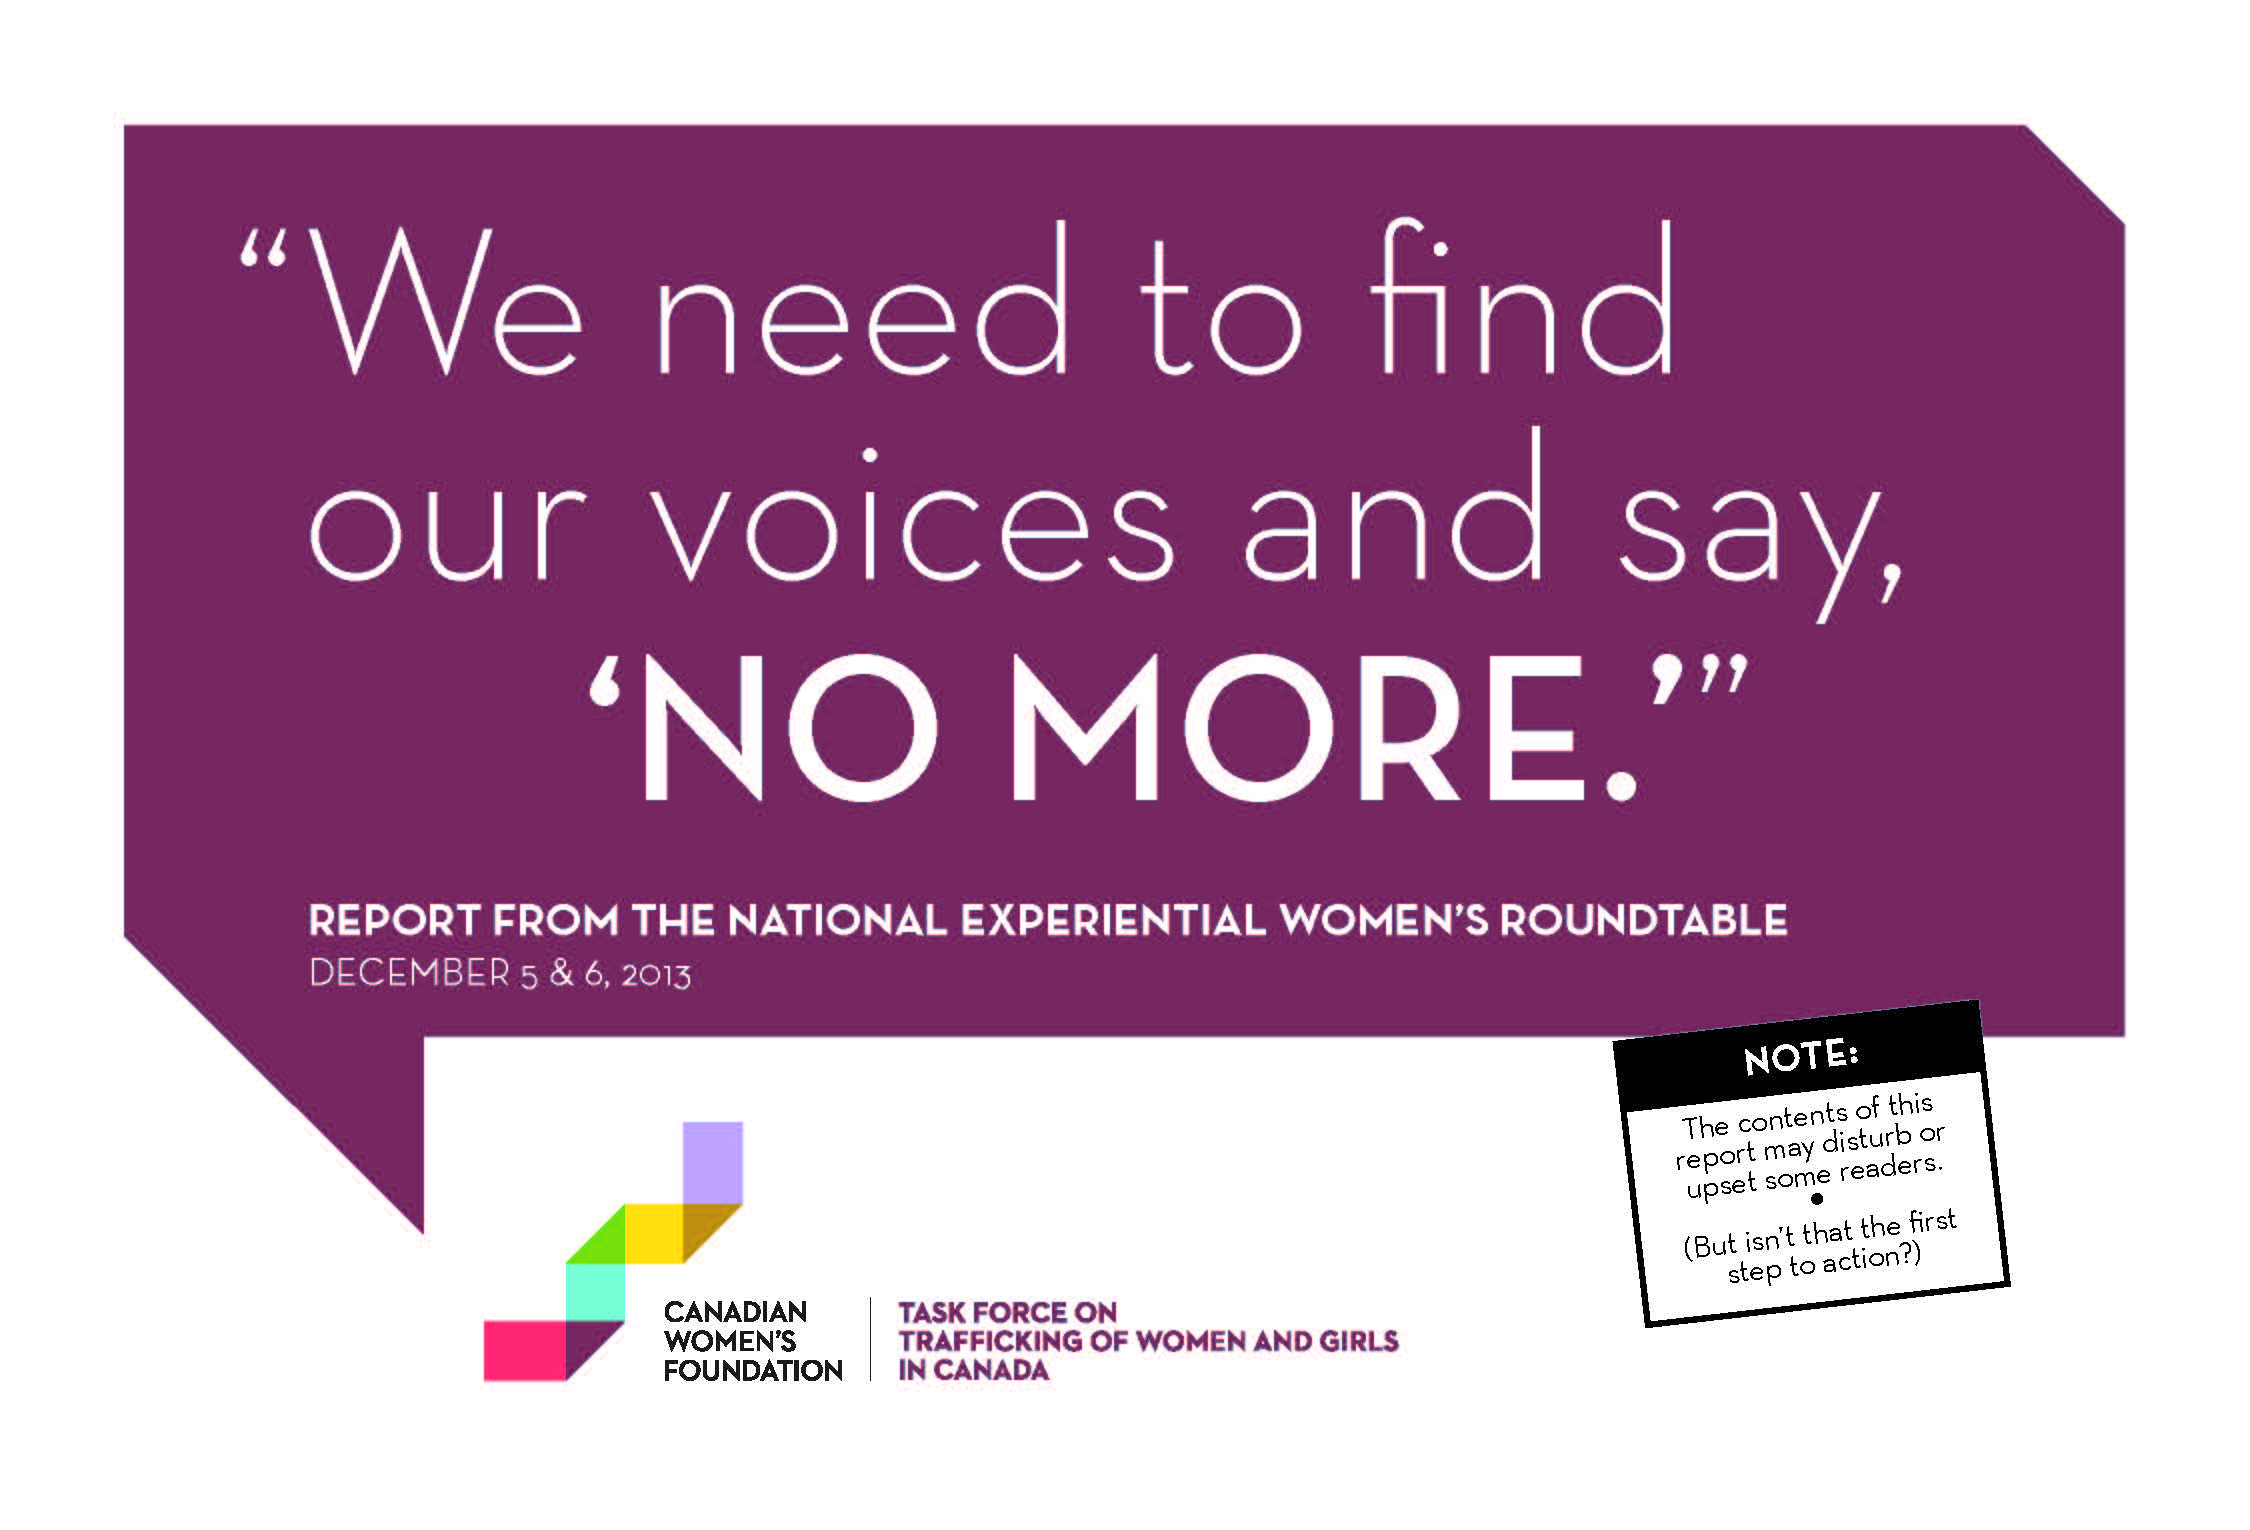 Report from the National Experiential Women's Roundtable, 2013